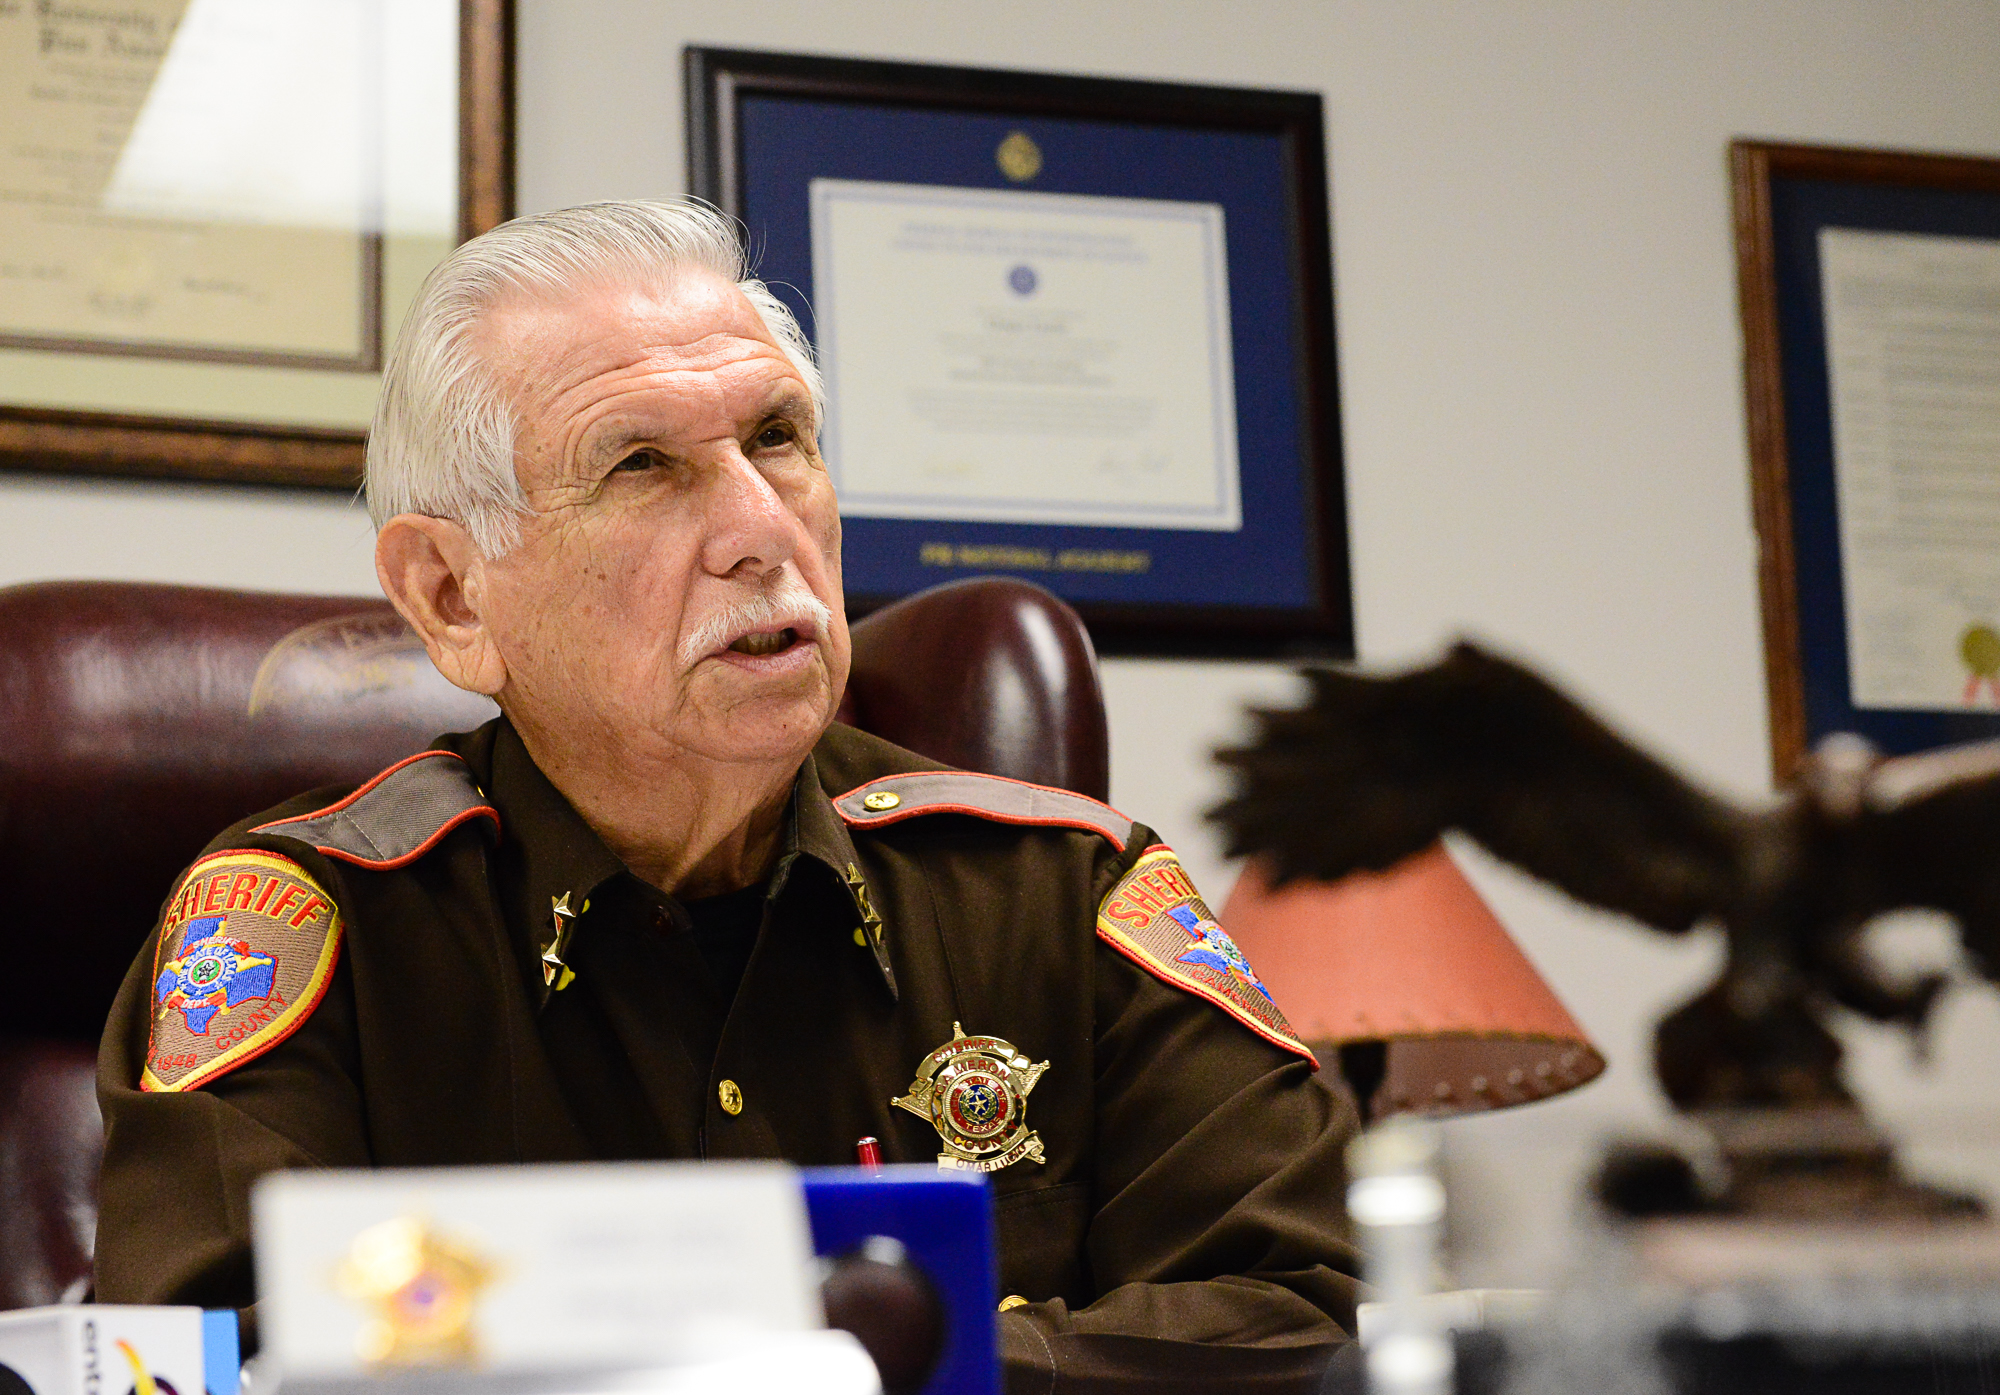 Cameron County Sheriff Omar Lucio speaks to the media at a conference on Wednesday, July 20, 2016, in Brownsville, Texas. Lucio discussed two recent incidents, an armed robbery in La Feria, and an arrest of two young men who are now charged with transporting narcotics in Brownsville. (Jason Hoekema/The Brownsville Herald via AP)